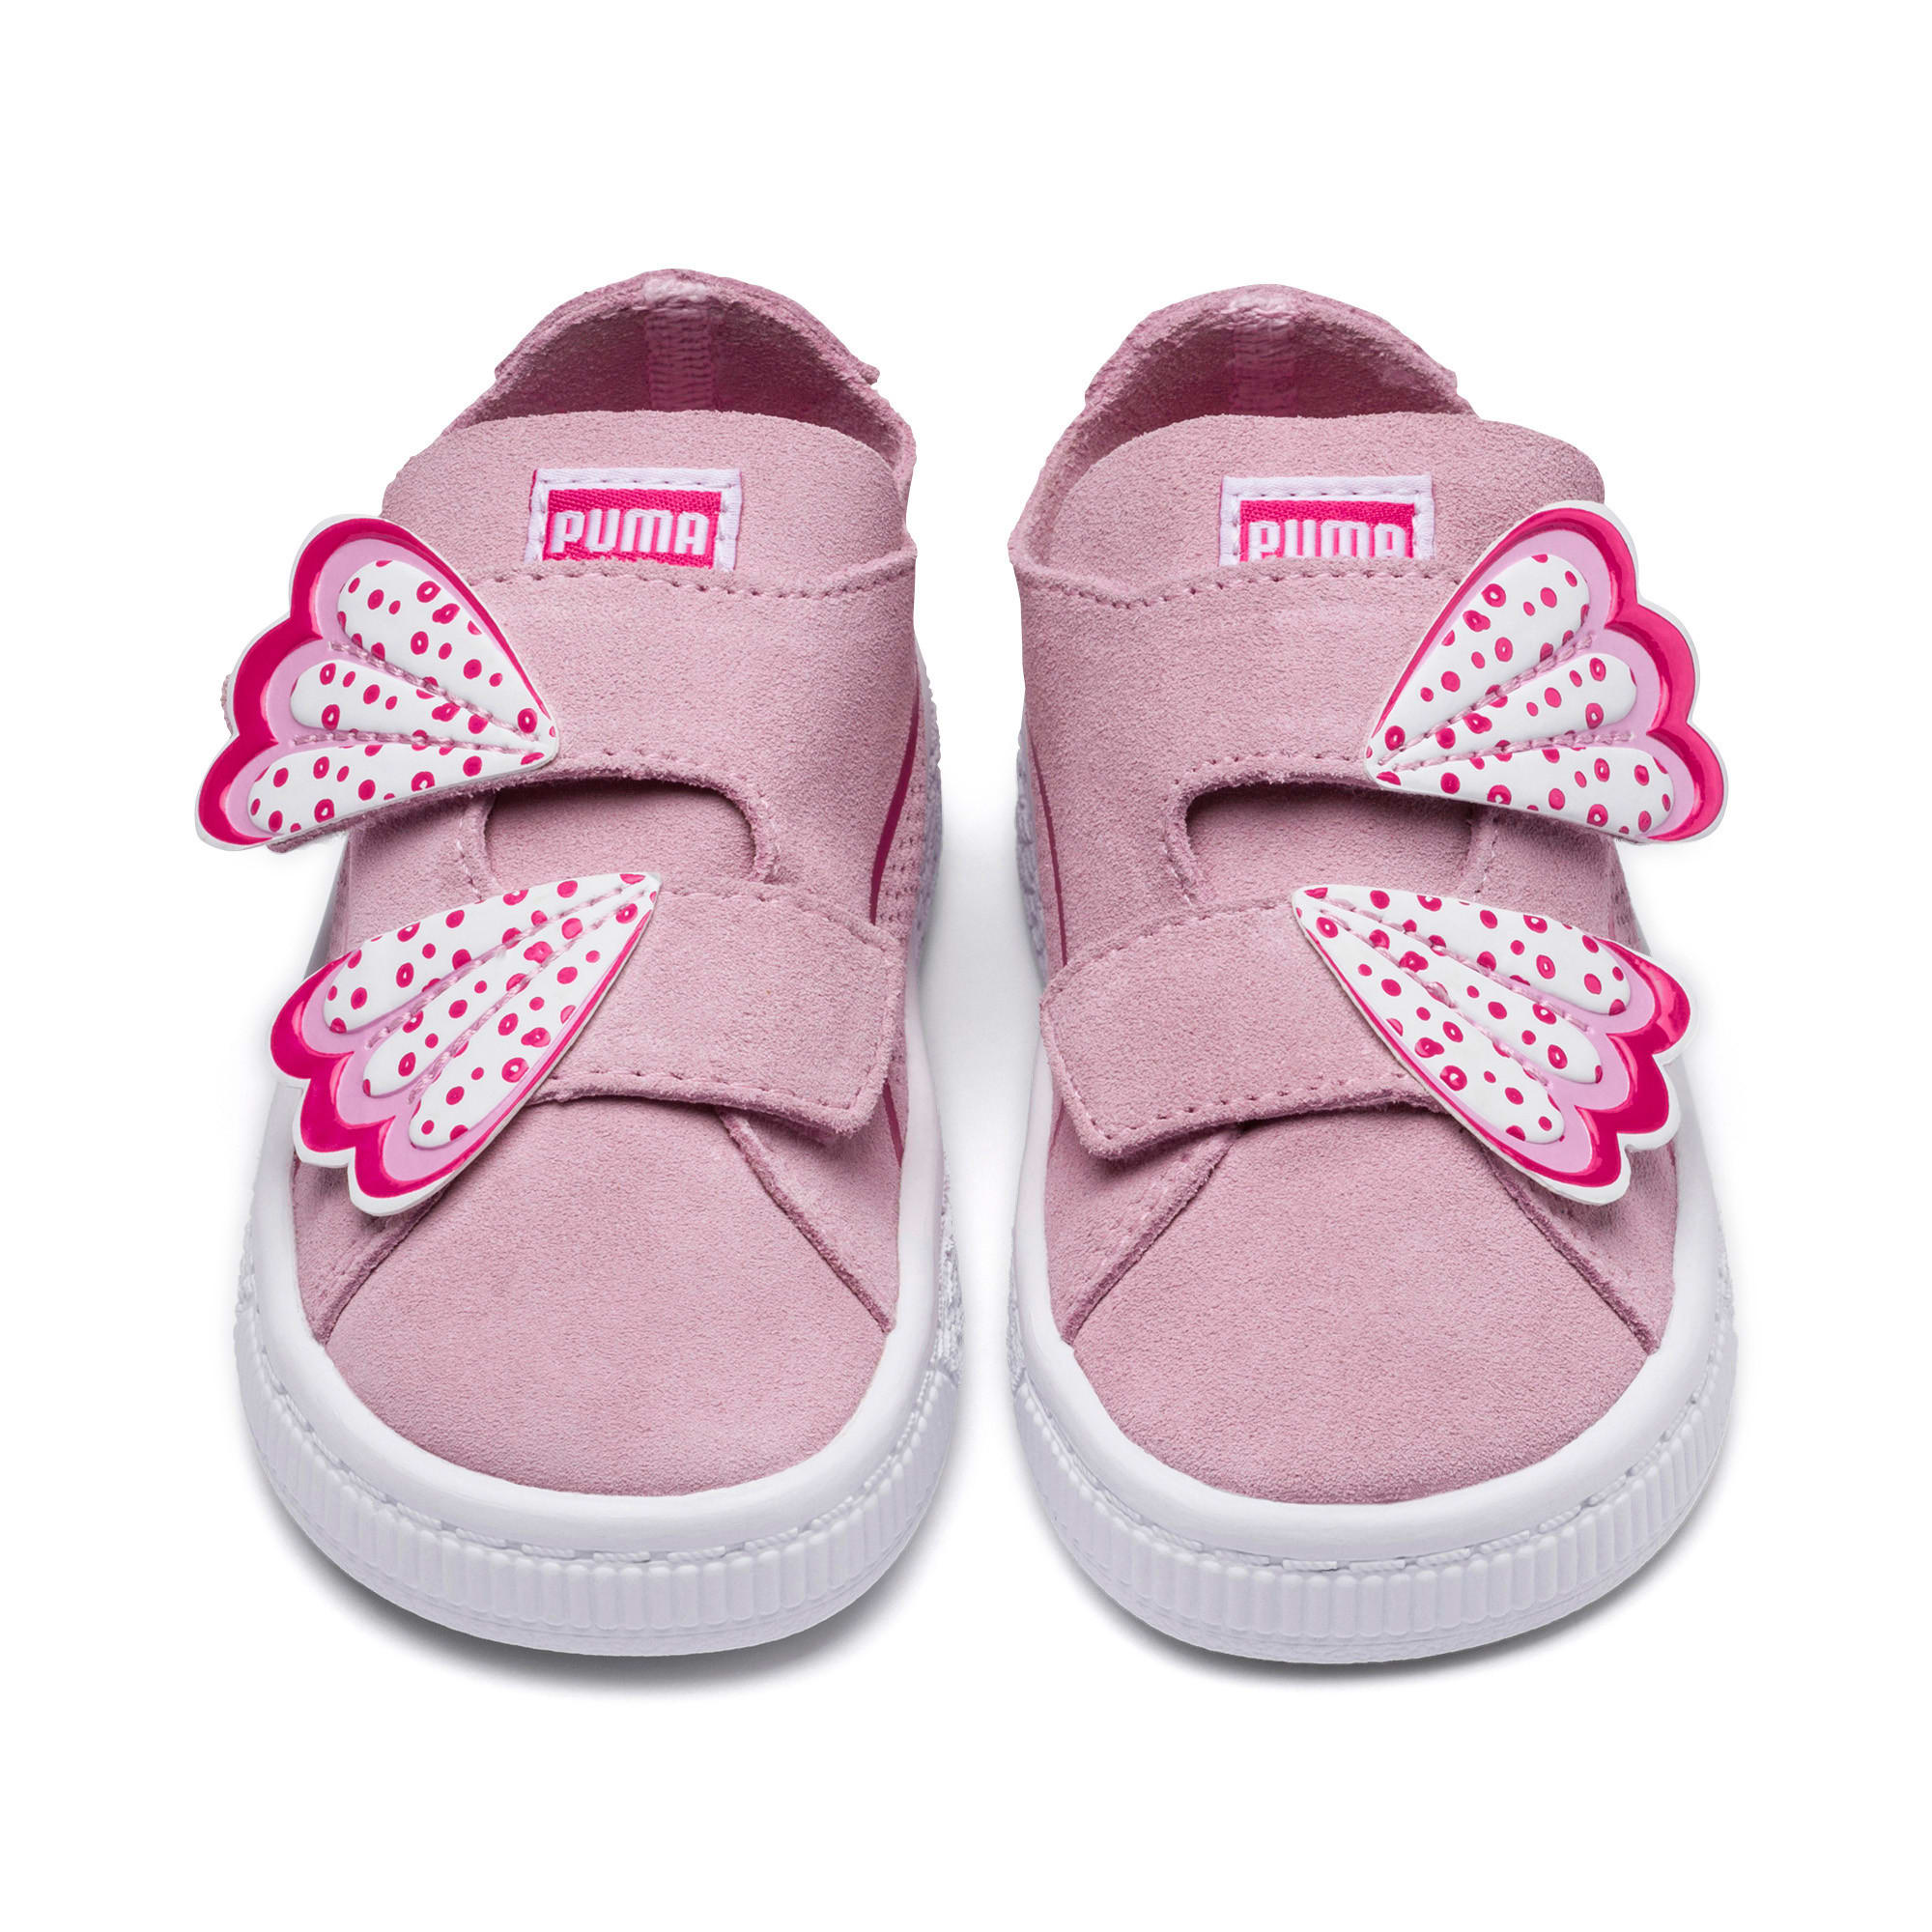 Thumbnail 3 of Suede Deconstruct Butterfly Toddler Shoes, Pale Pink-Fuchsia Purple, medium